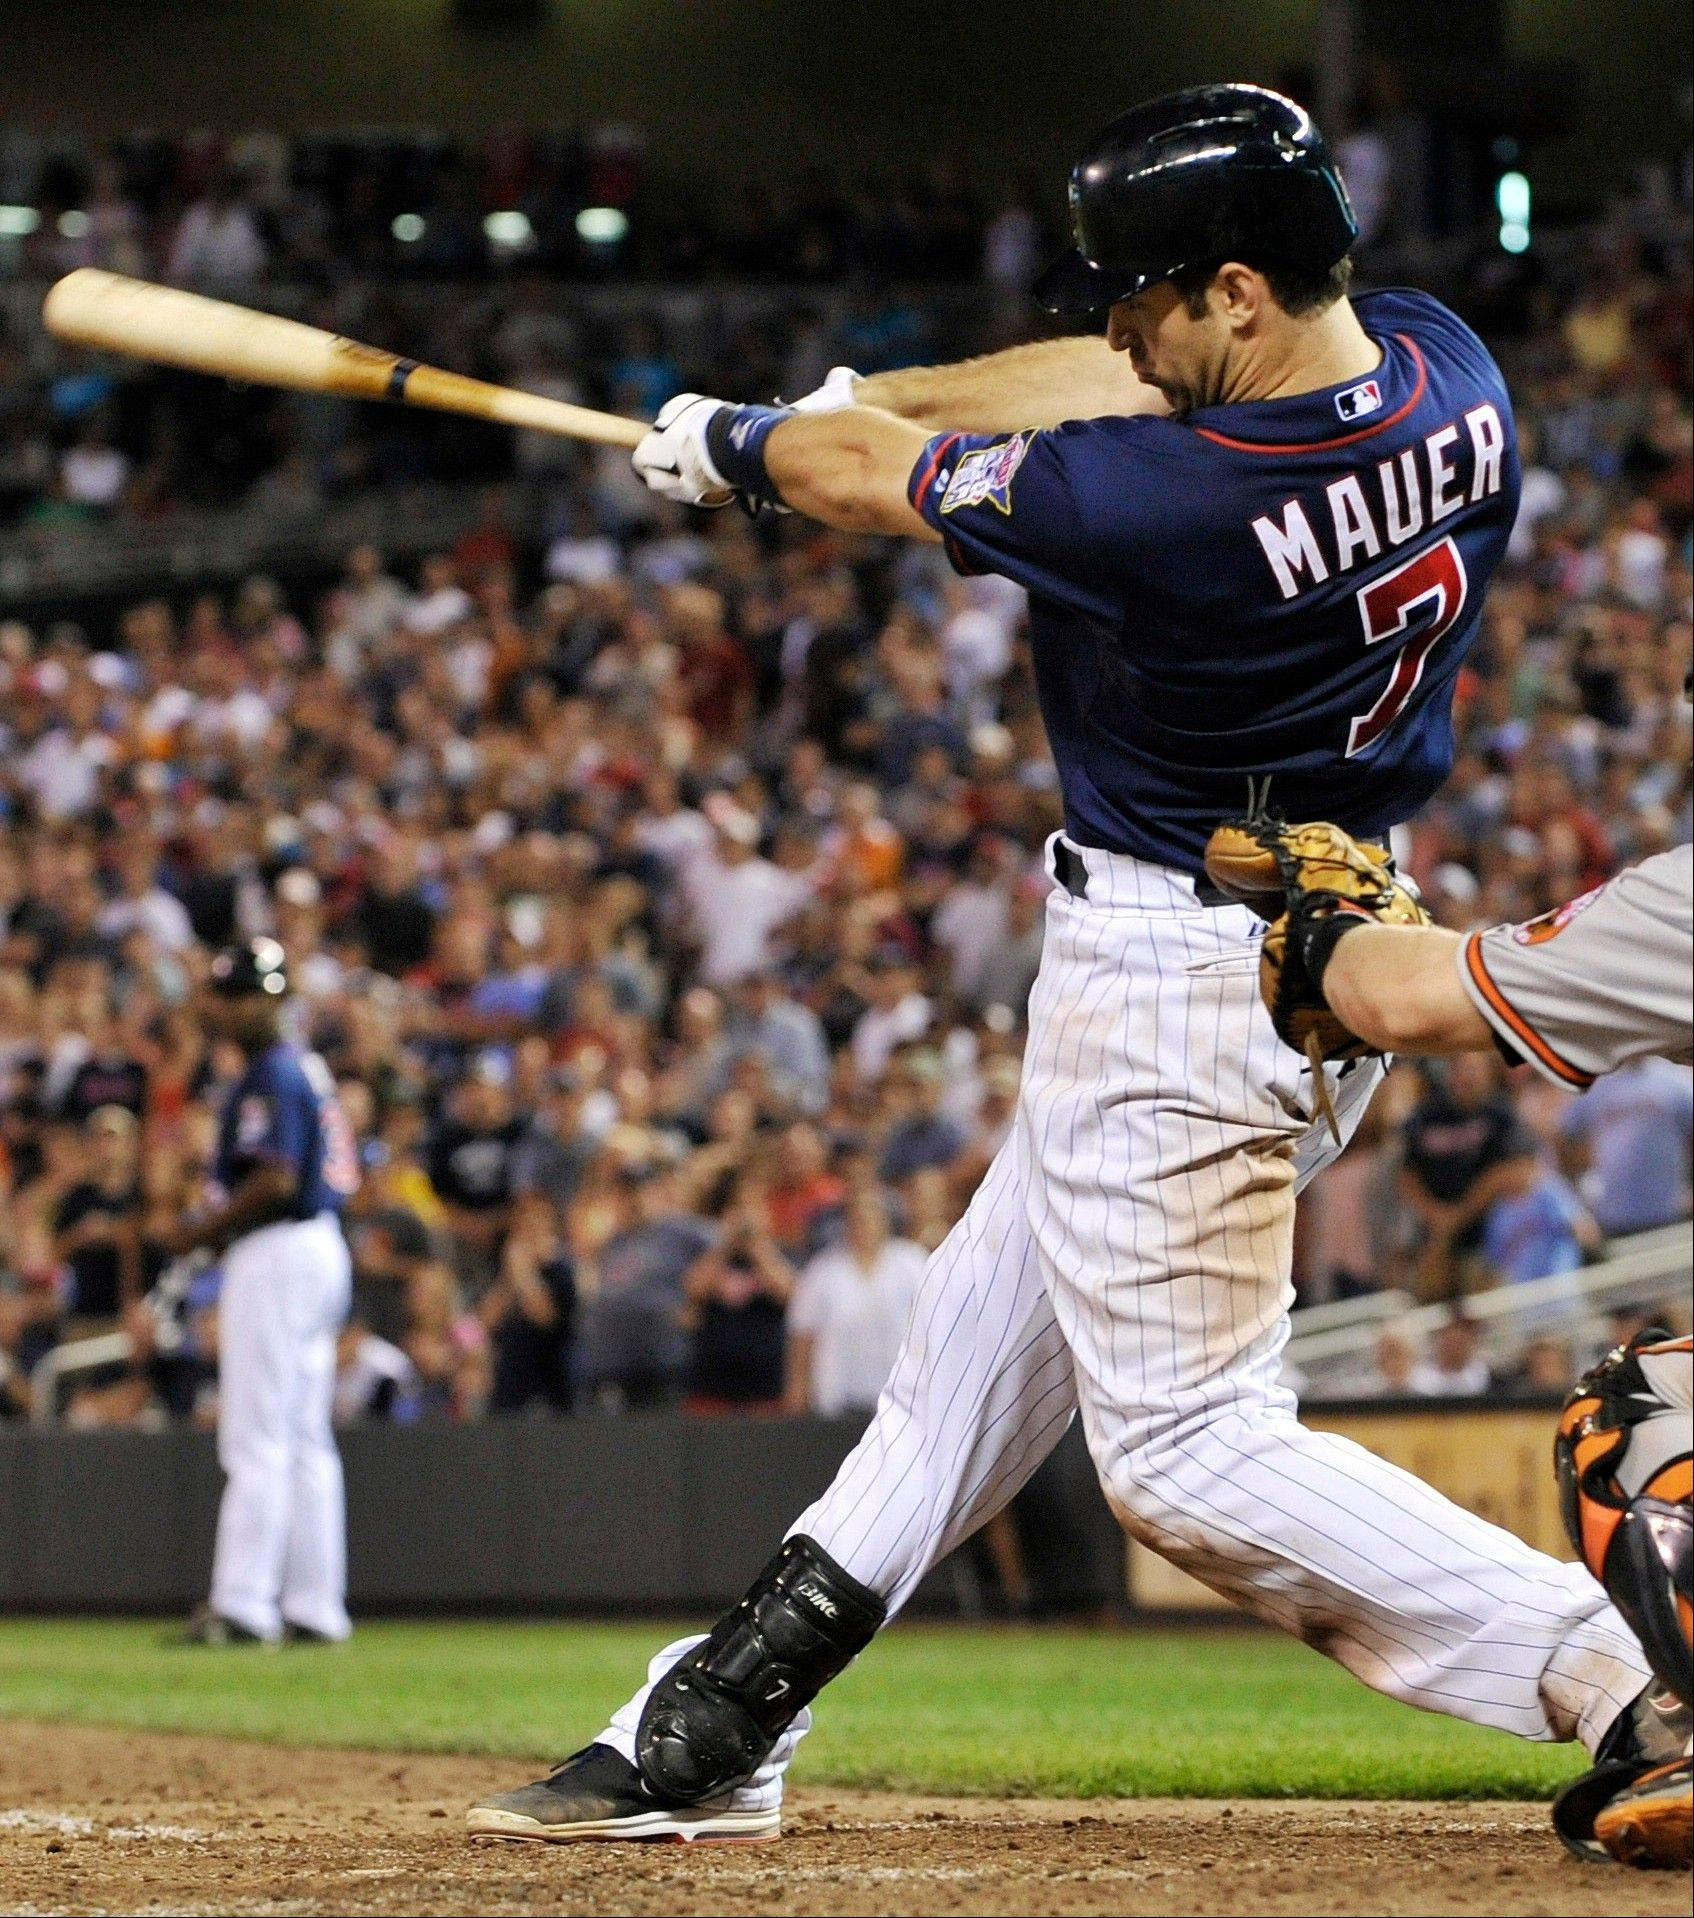 The Minnesota Twins' Joe Mauer hits an RBI single off Baltimore Orioles pitcher Pedro Strop Tuesday during the eighth inning in Minneapolis. Mauer went 3-for-4 as the Twins won 6-4.